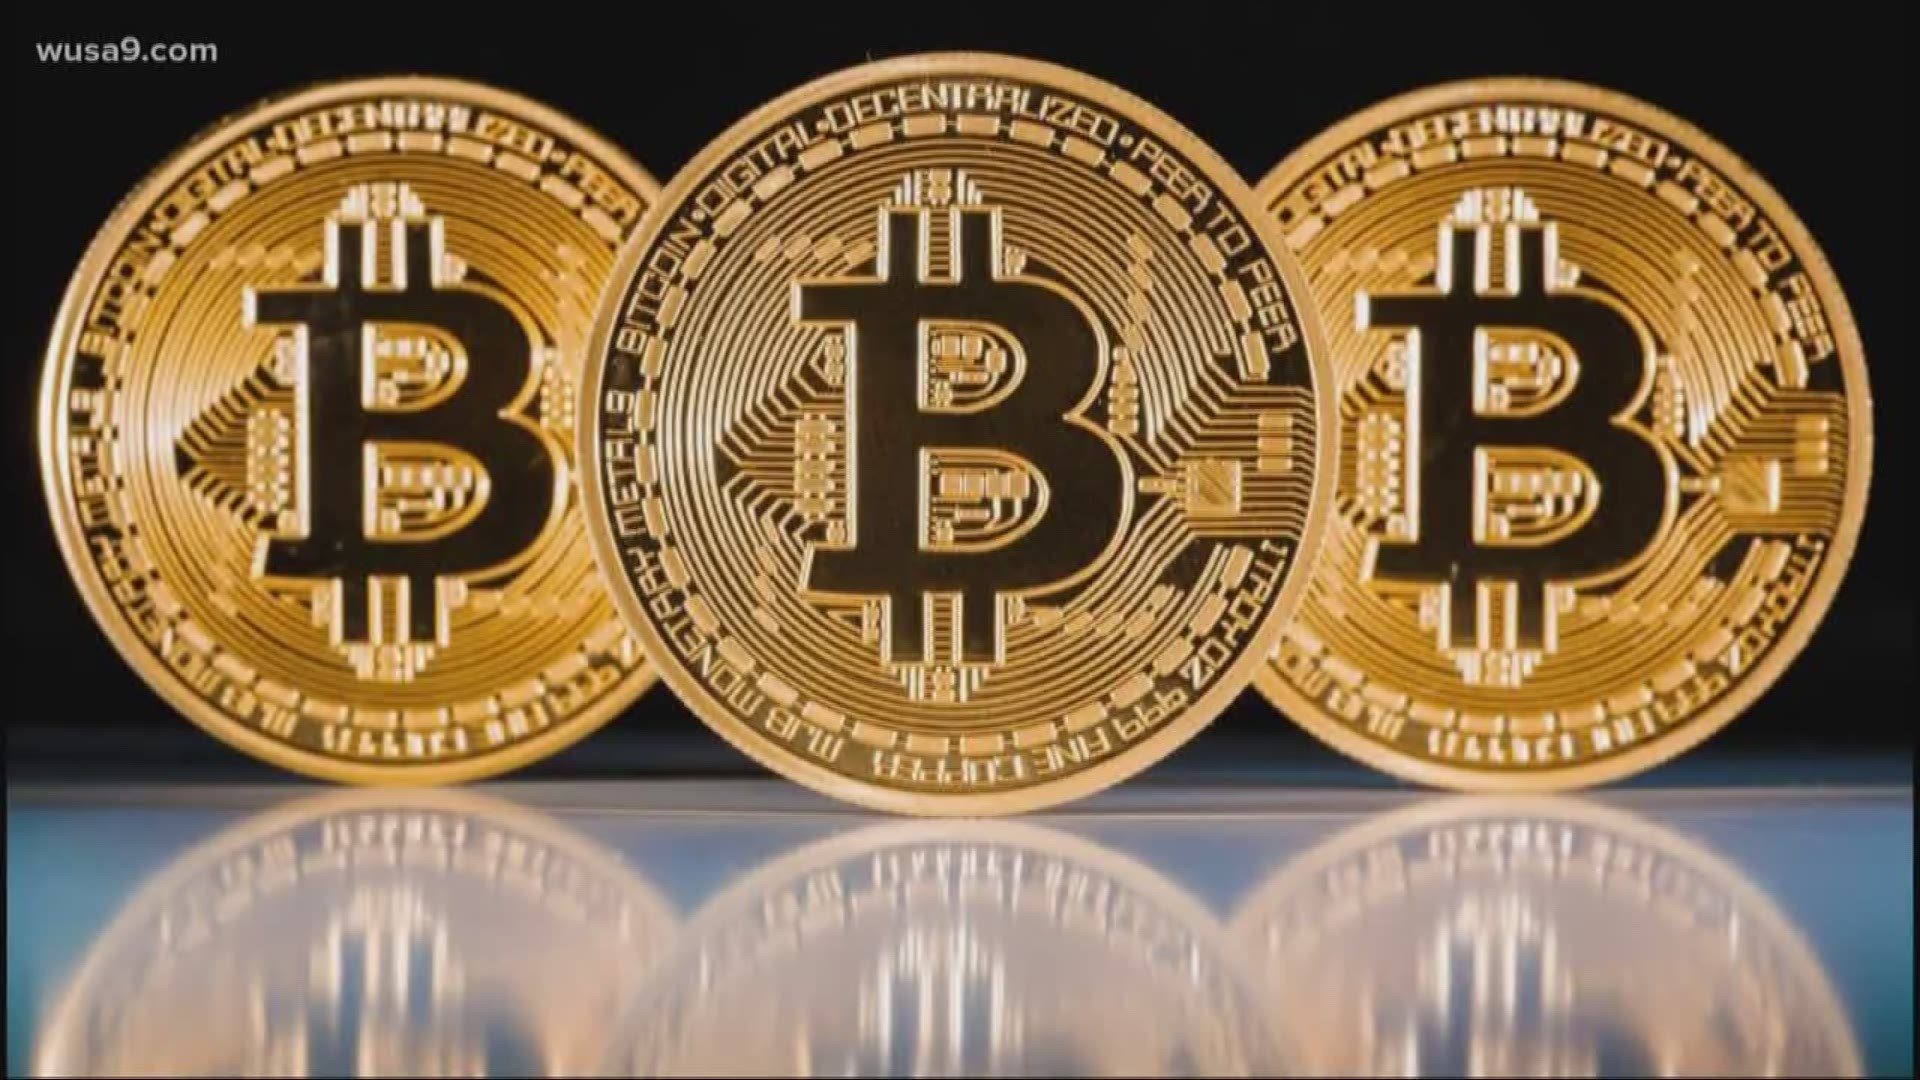 Author: VERIFY: What's going on with Bitcoin? Why are there such ups and downs with cryptocurrency?